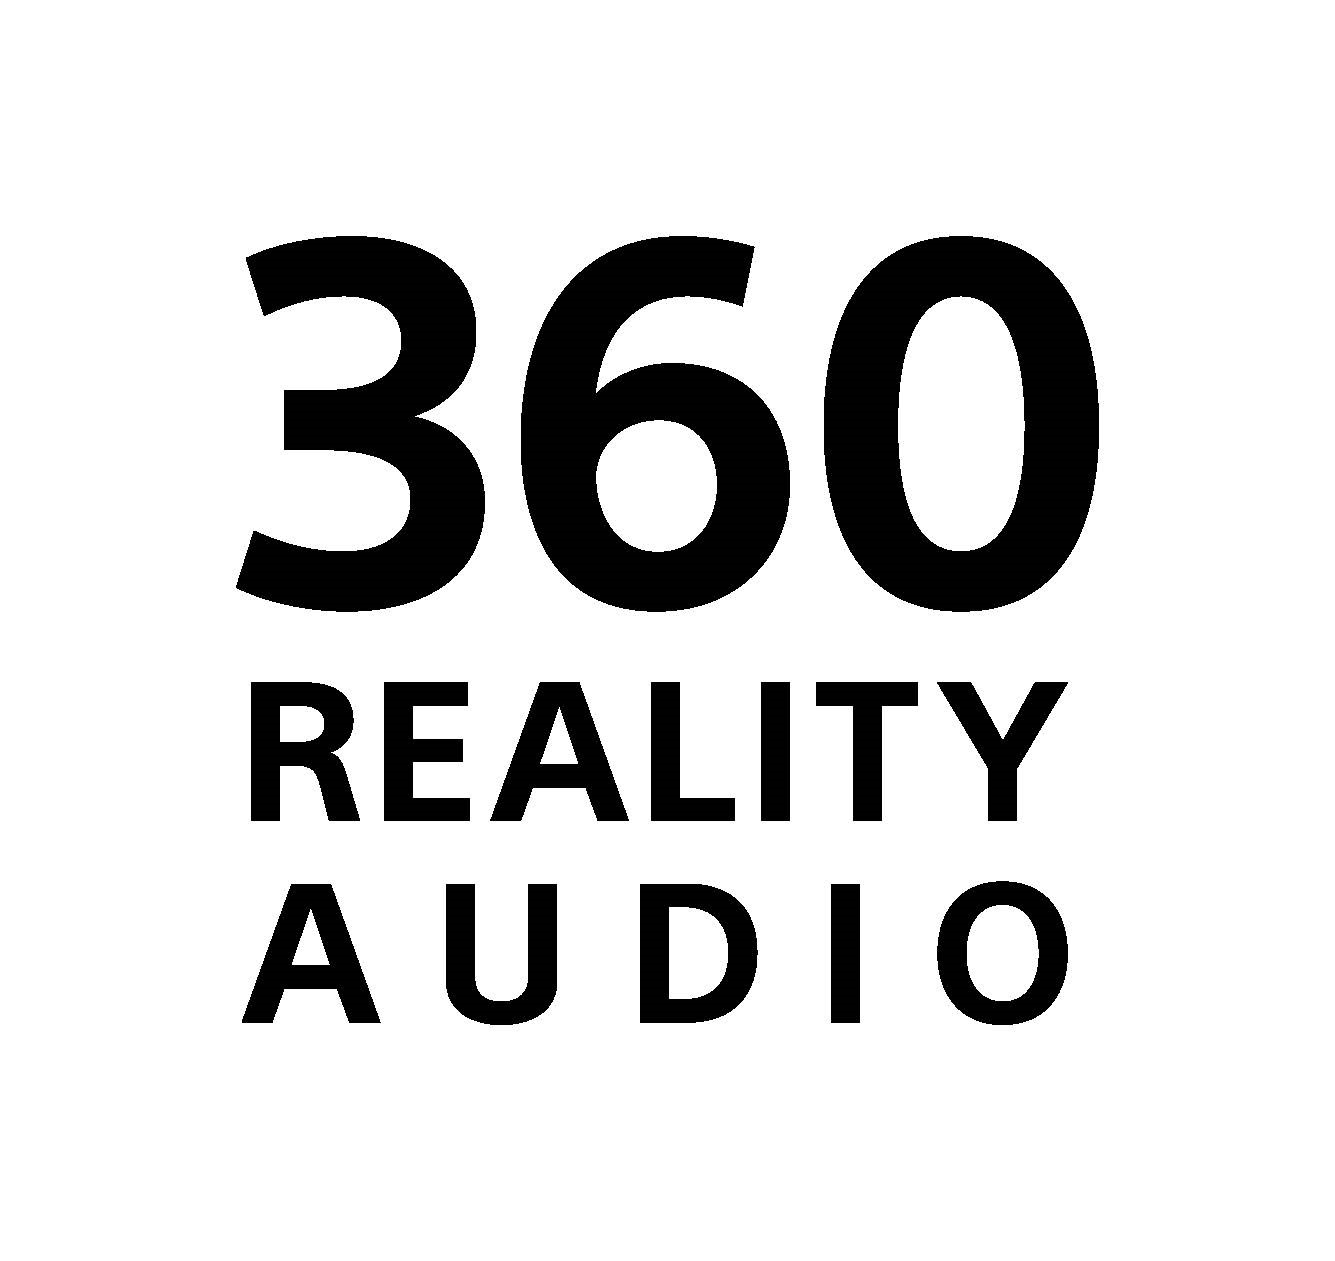 "Sony Introduces All New ""360 Reality Audio"" Music Experience That Immerses Listeners in a Three-Dimensional Sound Field Powered by Original Object-Based Spatial Audio Technology"